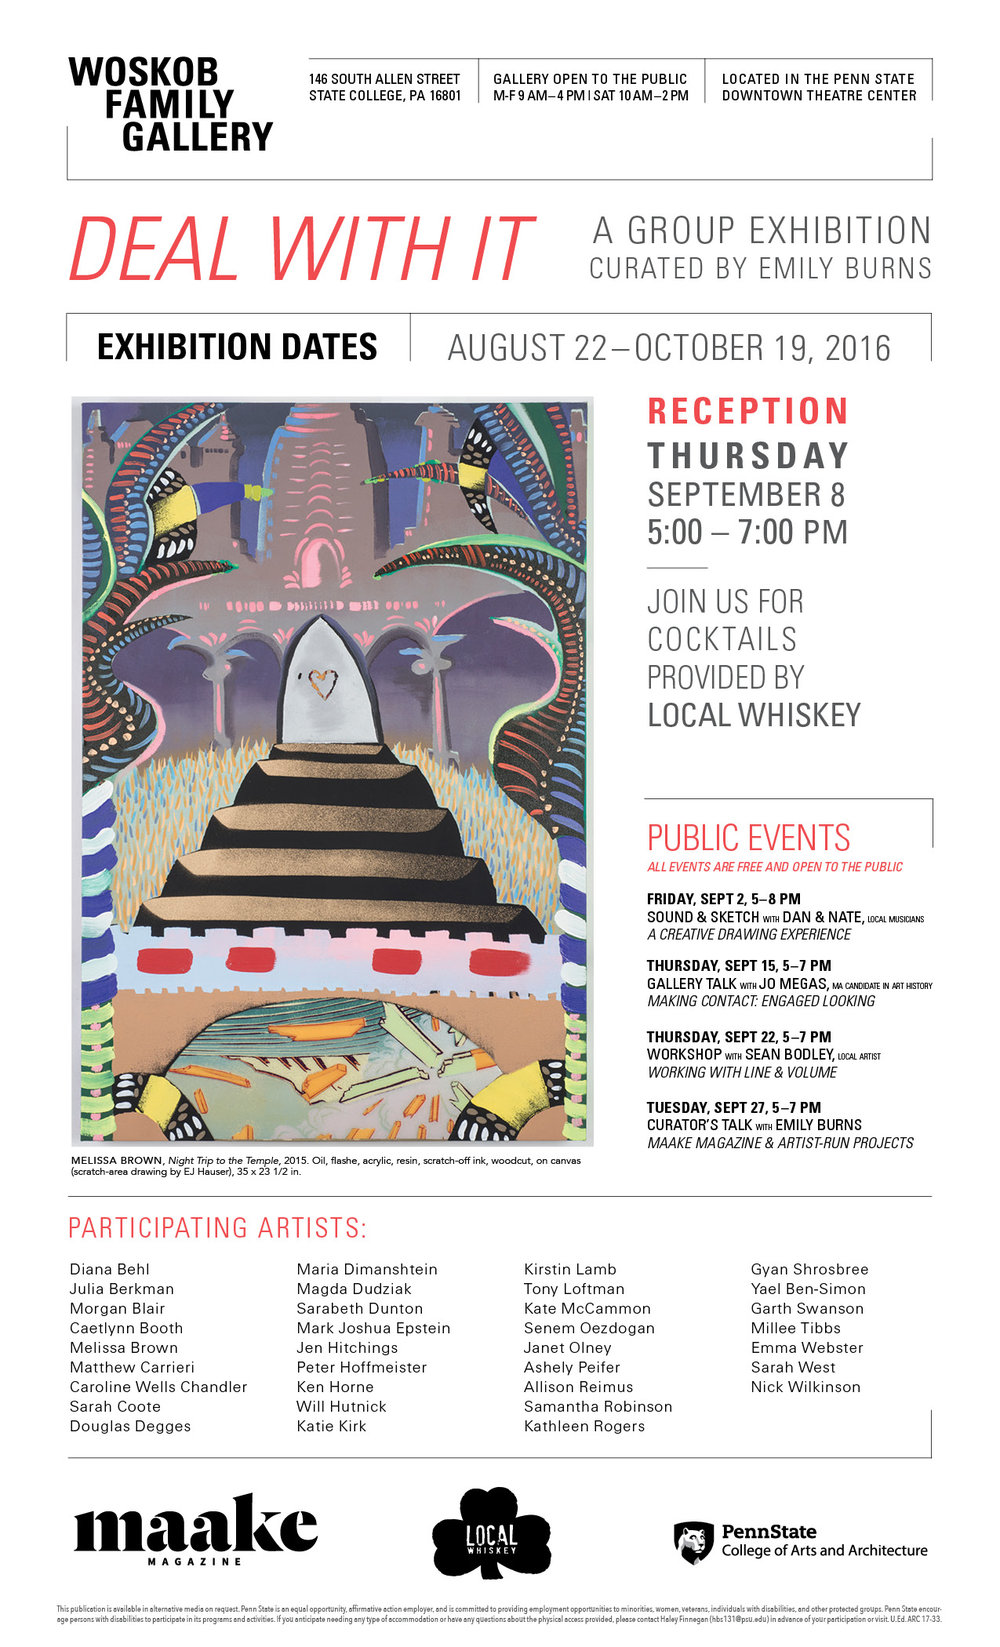 DEAL WITH IT - Curated by Emily Burns, Maake MagazineA group exhibition held at The Woskob Family gallery in State College, PA from August 22–October 19, 2016